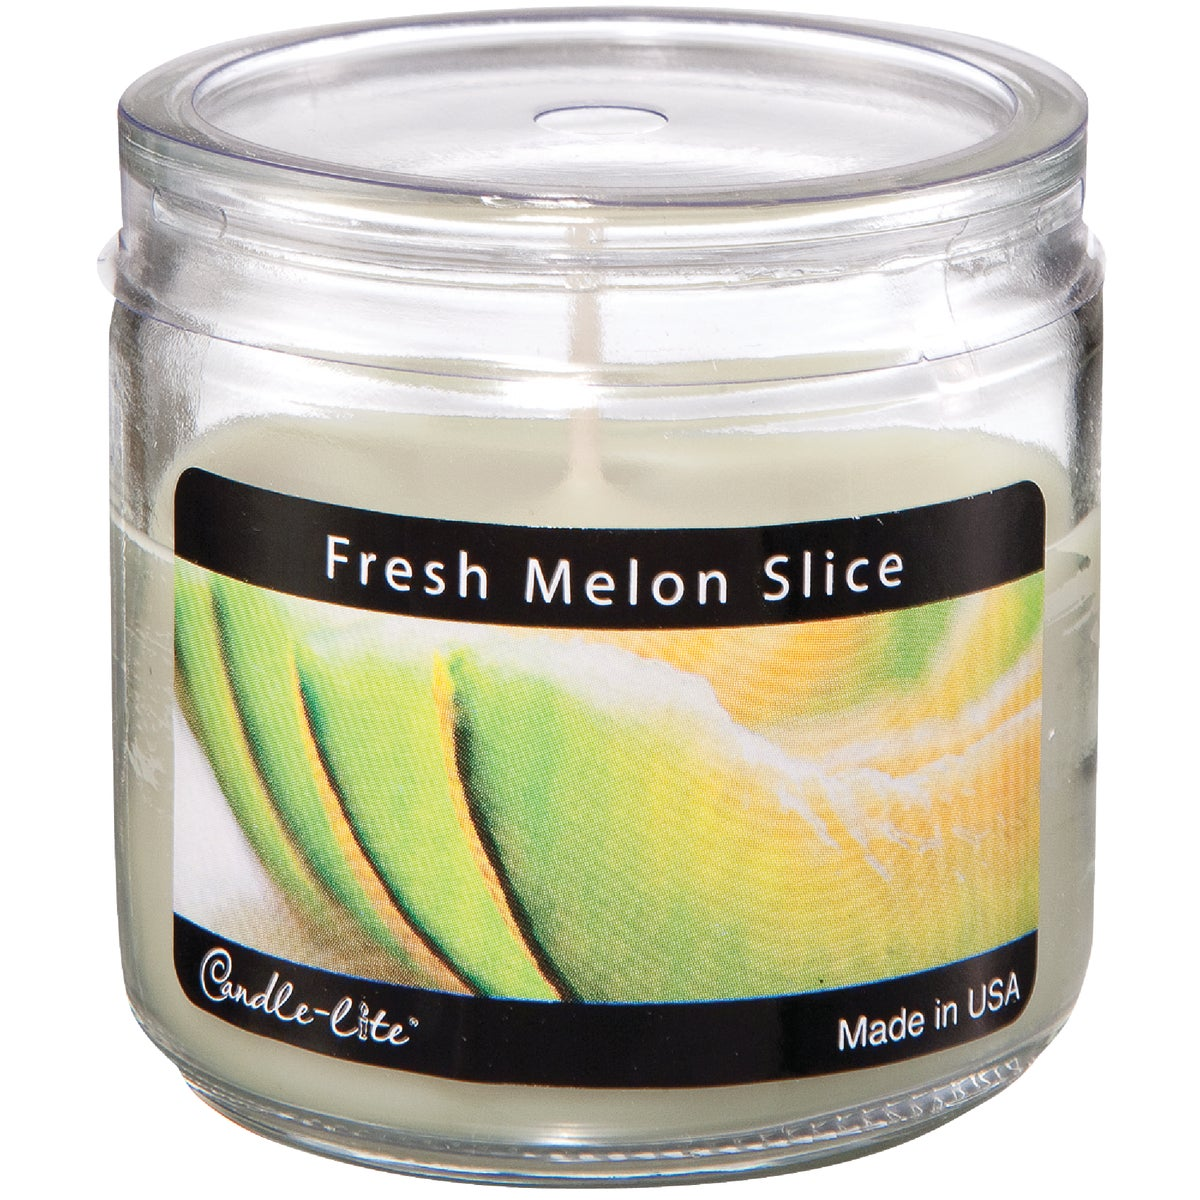 MELON SLICE JAR CANDLE - 2400170 by Candle Lite Co